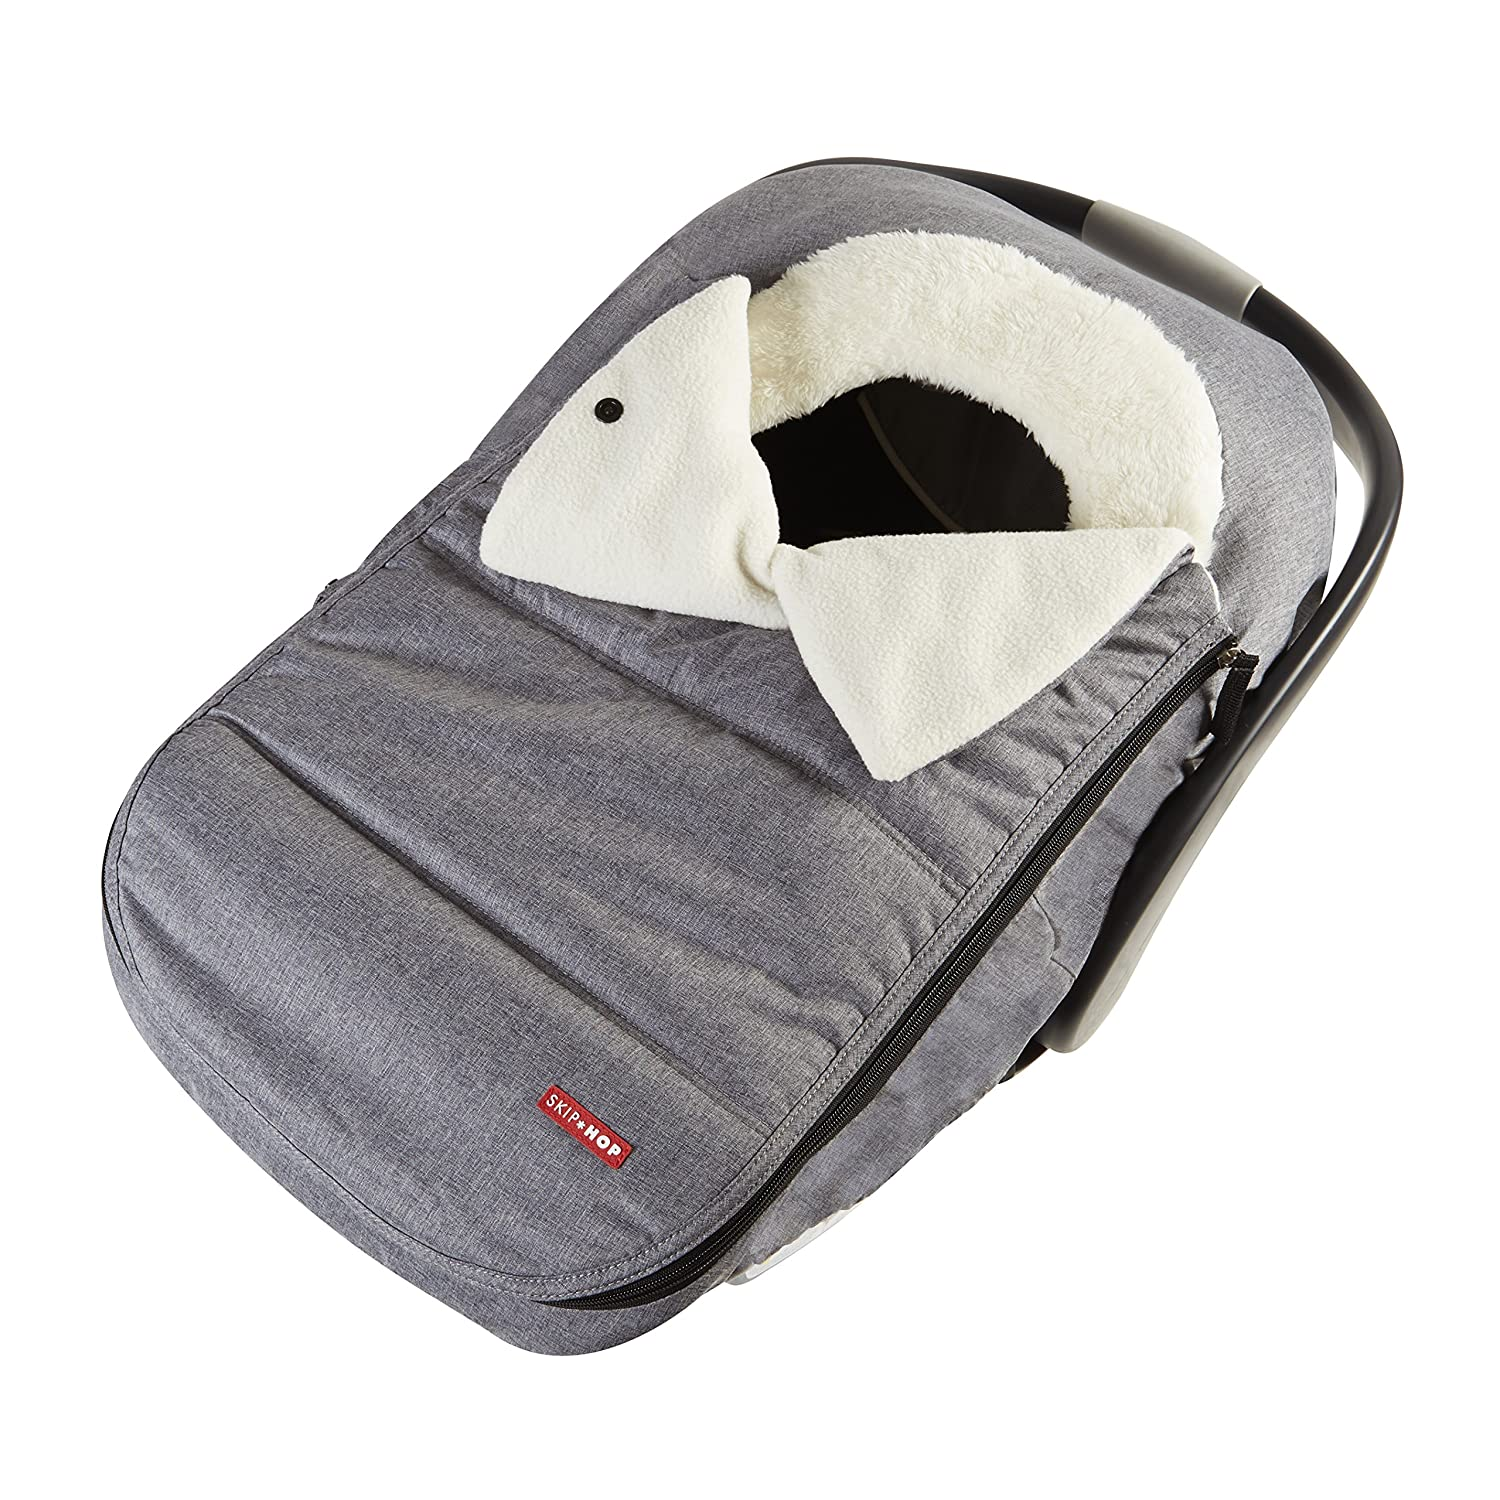 Skip Hop Stroll and GO Car Seat Cover Heather Grey